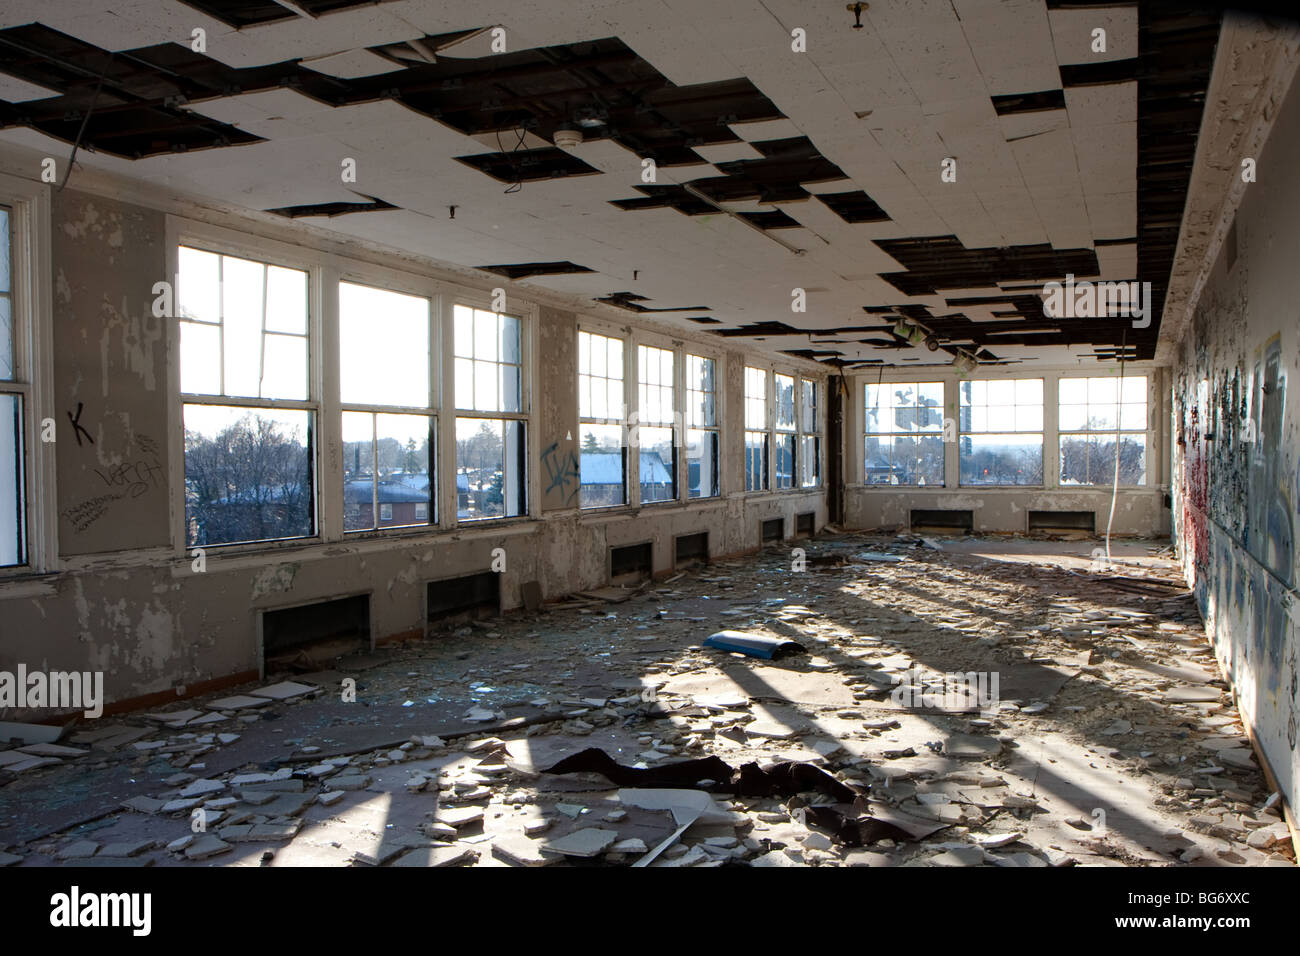 abandon industrial building interior broken window - Stock Image